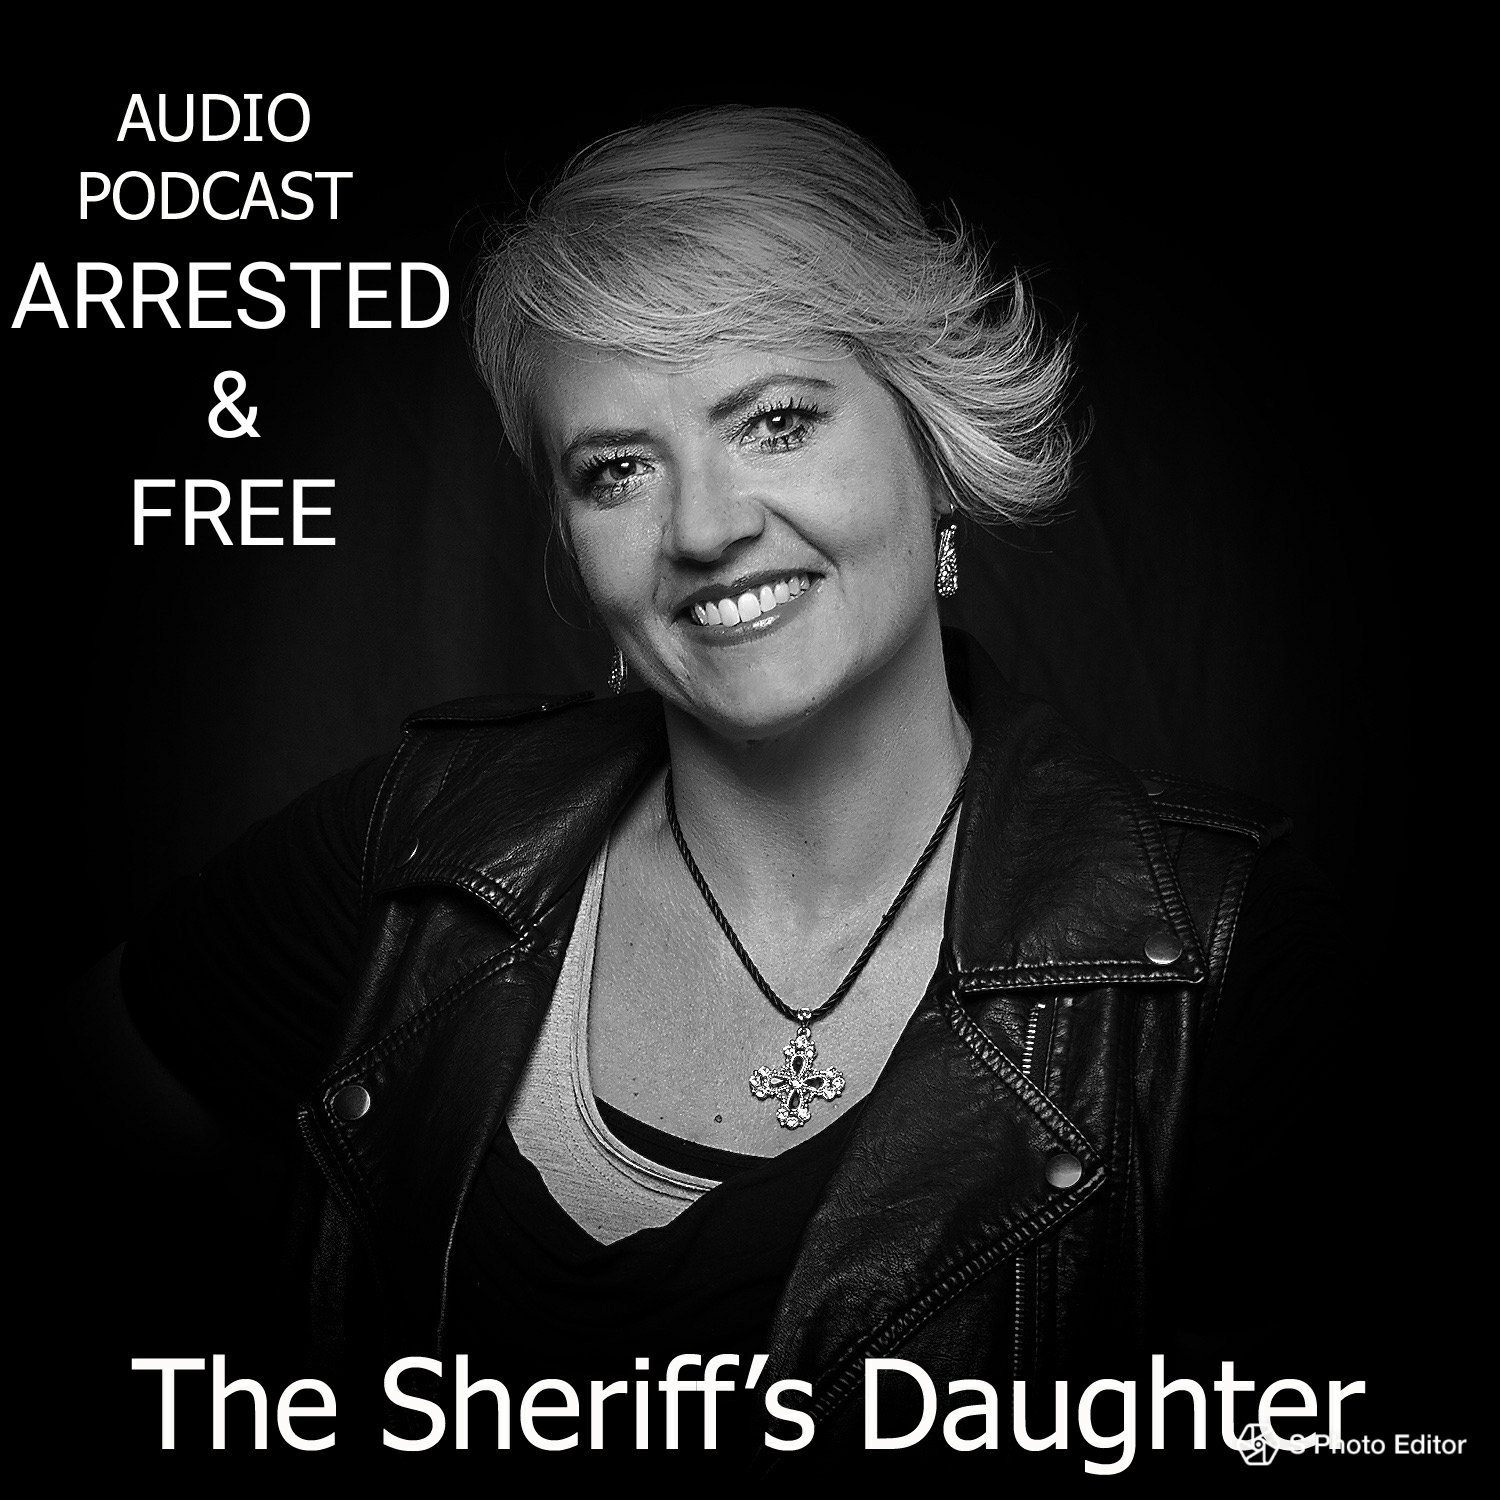 Arrested and Free with the Sherrif's Daughter - July 2, 2018